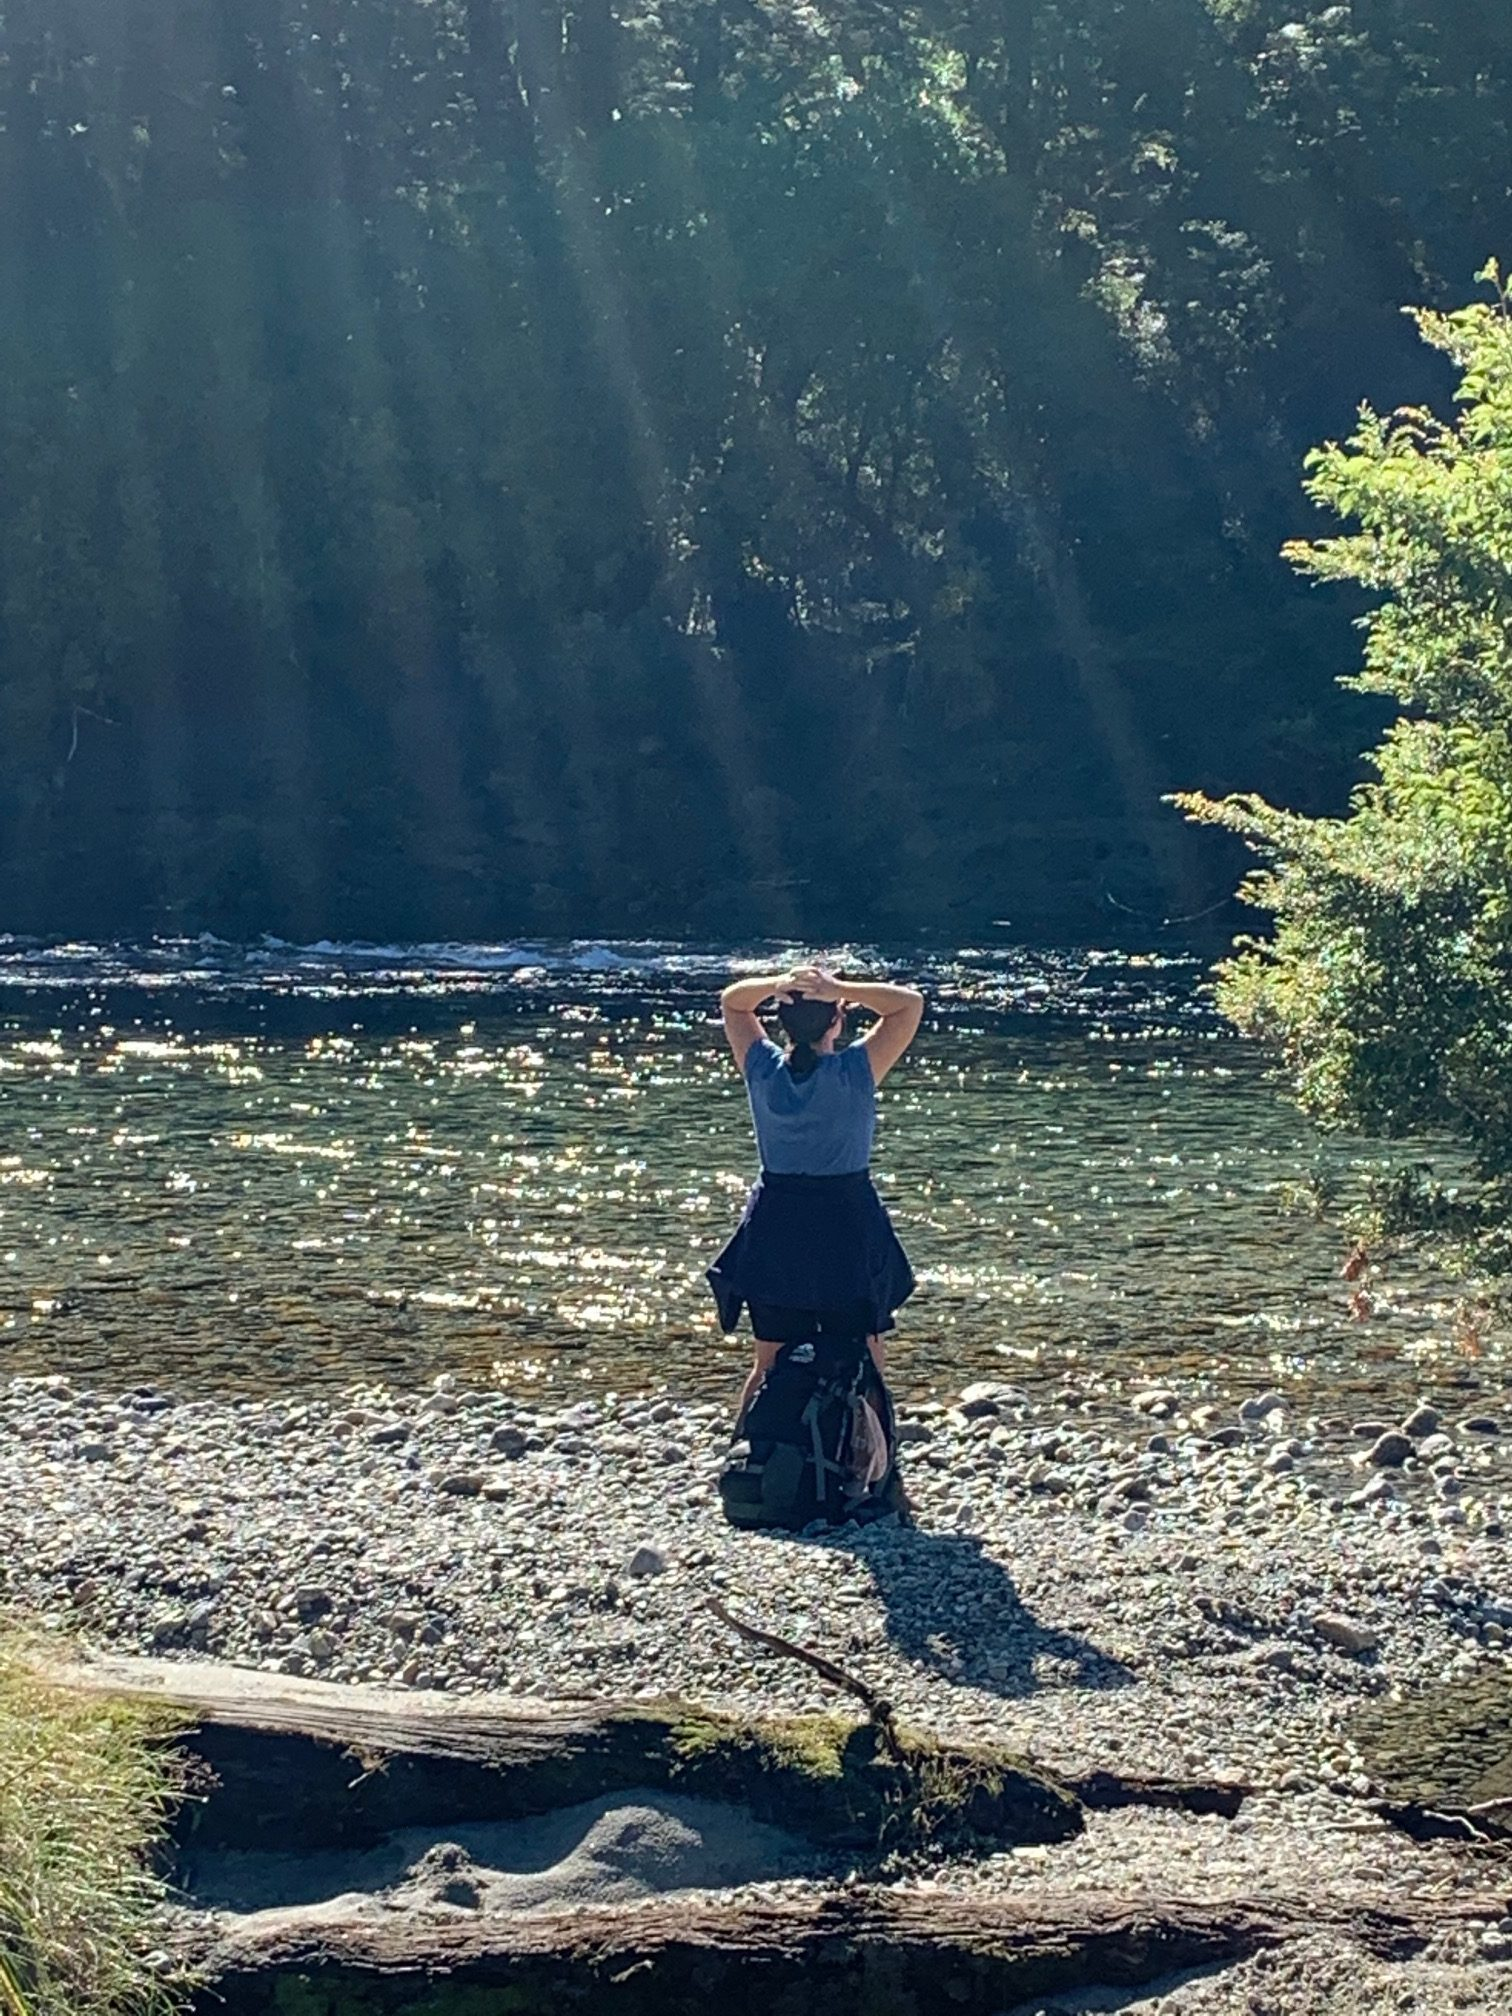 woman mindful in nature